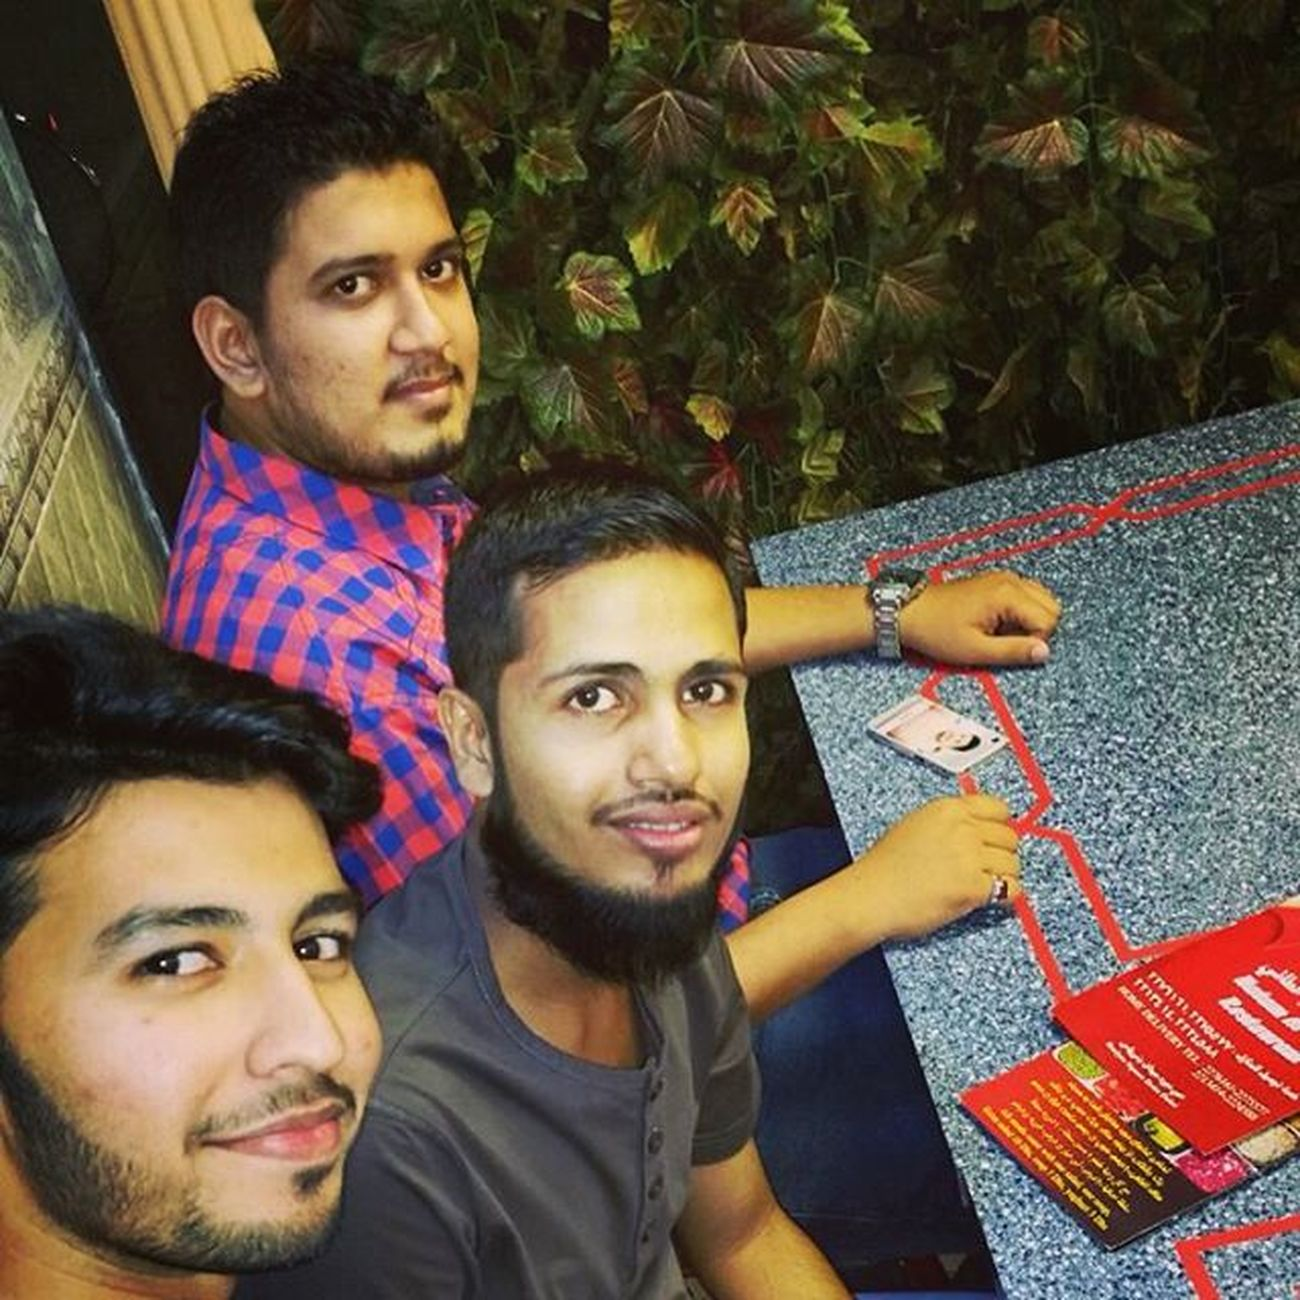 Dinnerwithfriends Dinnertime Friday Myfriday Fridaymood🔛 ChickenShawarma Dubailife Dubaifun Dubaifamily Instadubai Instadaily Instalife Instaphoto Instamood Instalove Instaloversapp Instagramers